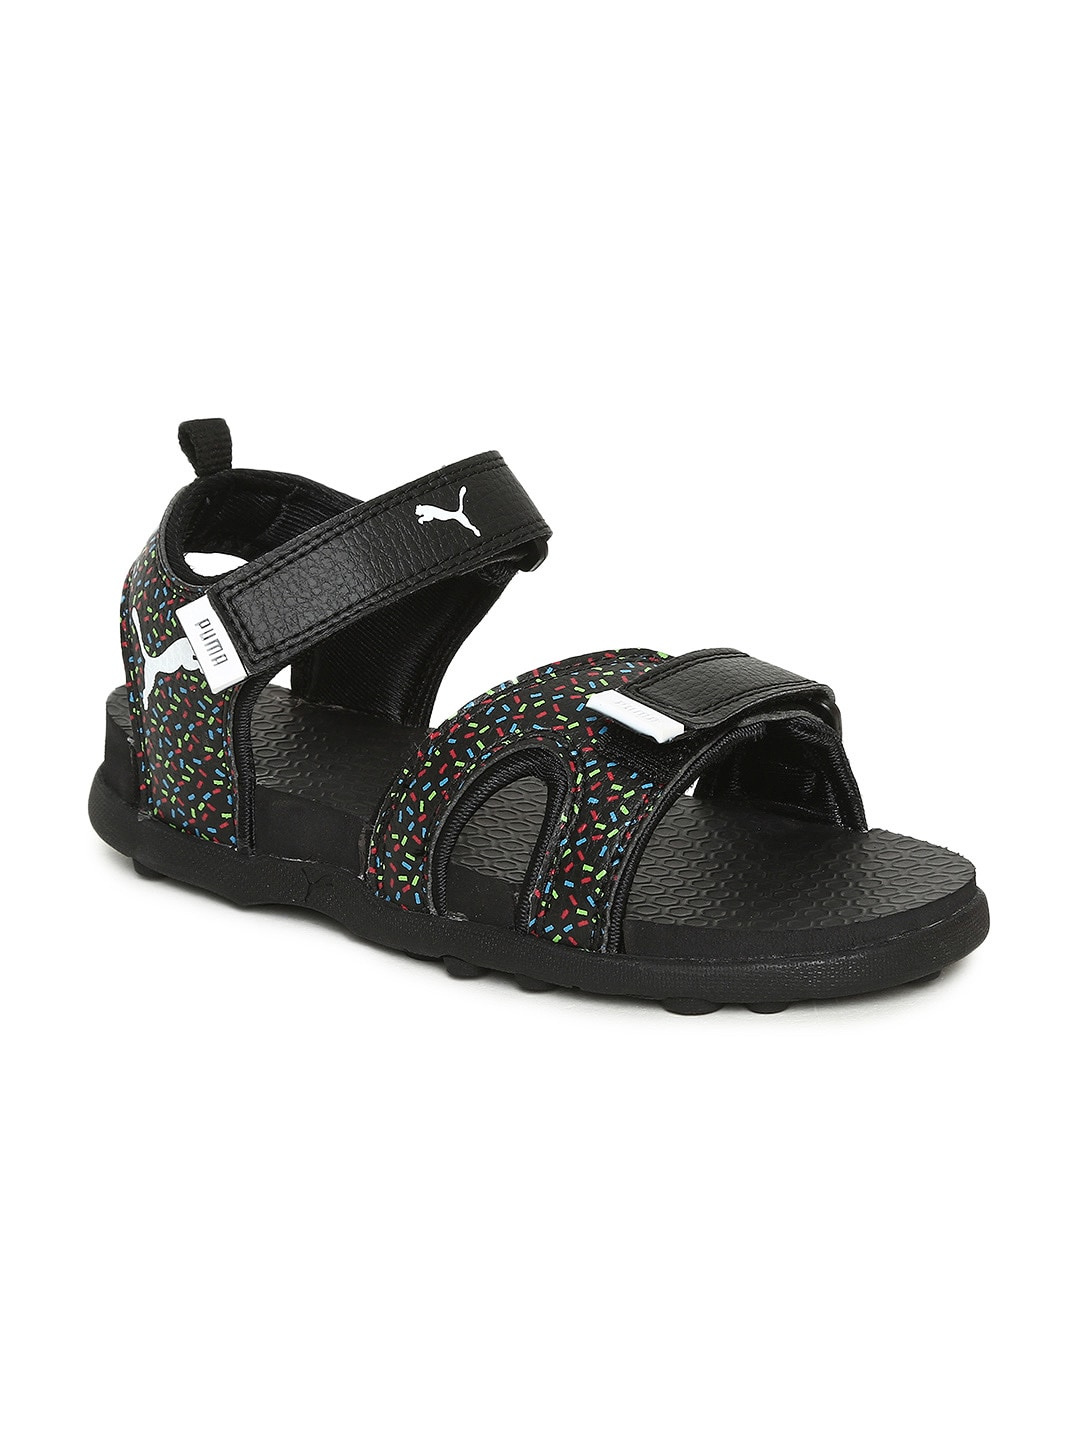 b889872cff1c4 Sports Sandals - Buy Sports Sandals Online in India